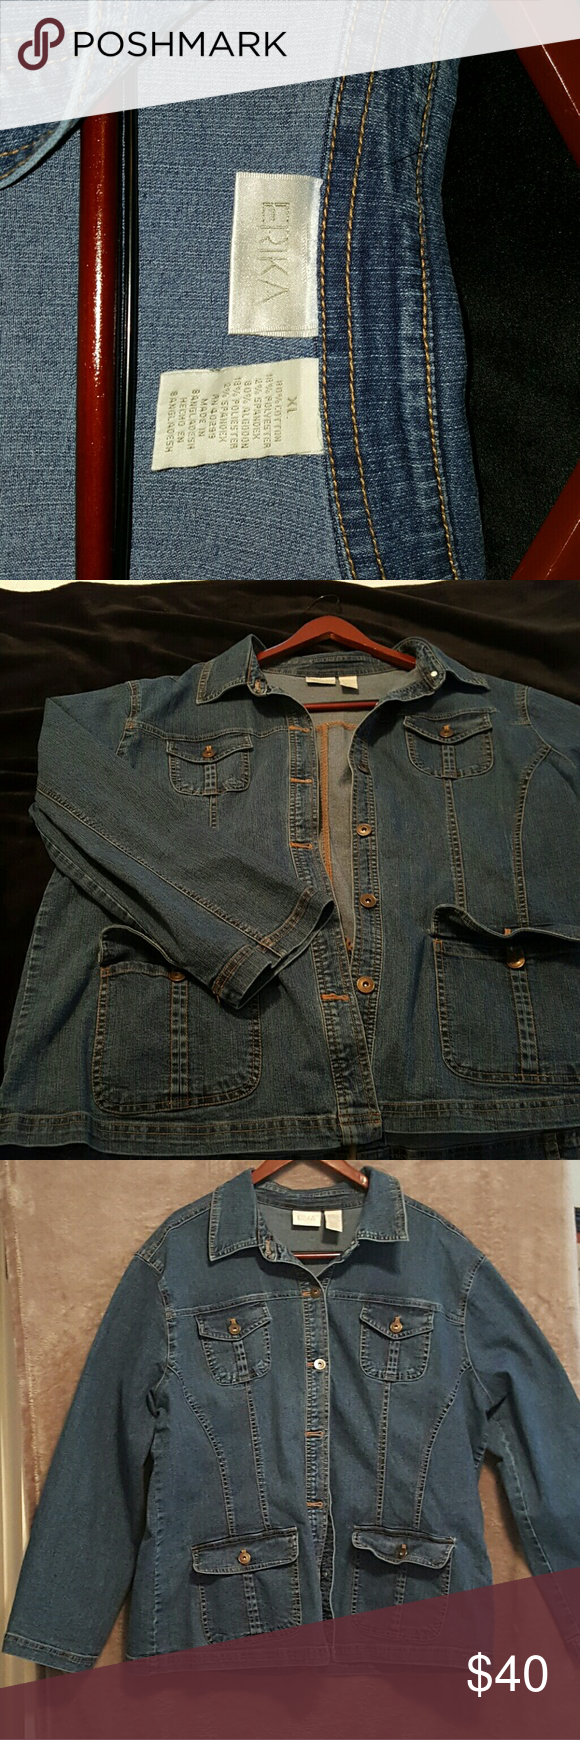 Ericka Jean Jacket Jean denim button up jacket with four working pockets. In excellent condition. Only worn twice. Ericka Jackets & Coats Jean Jackets